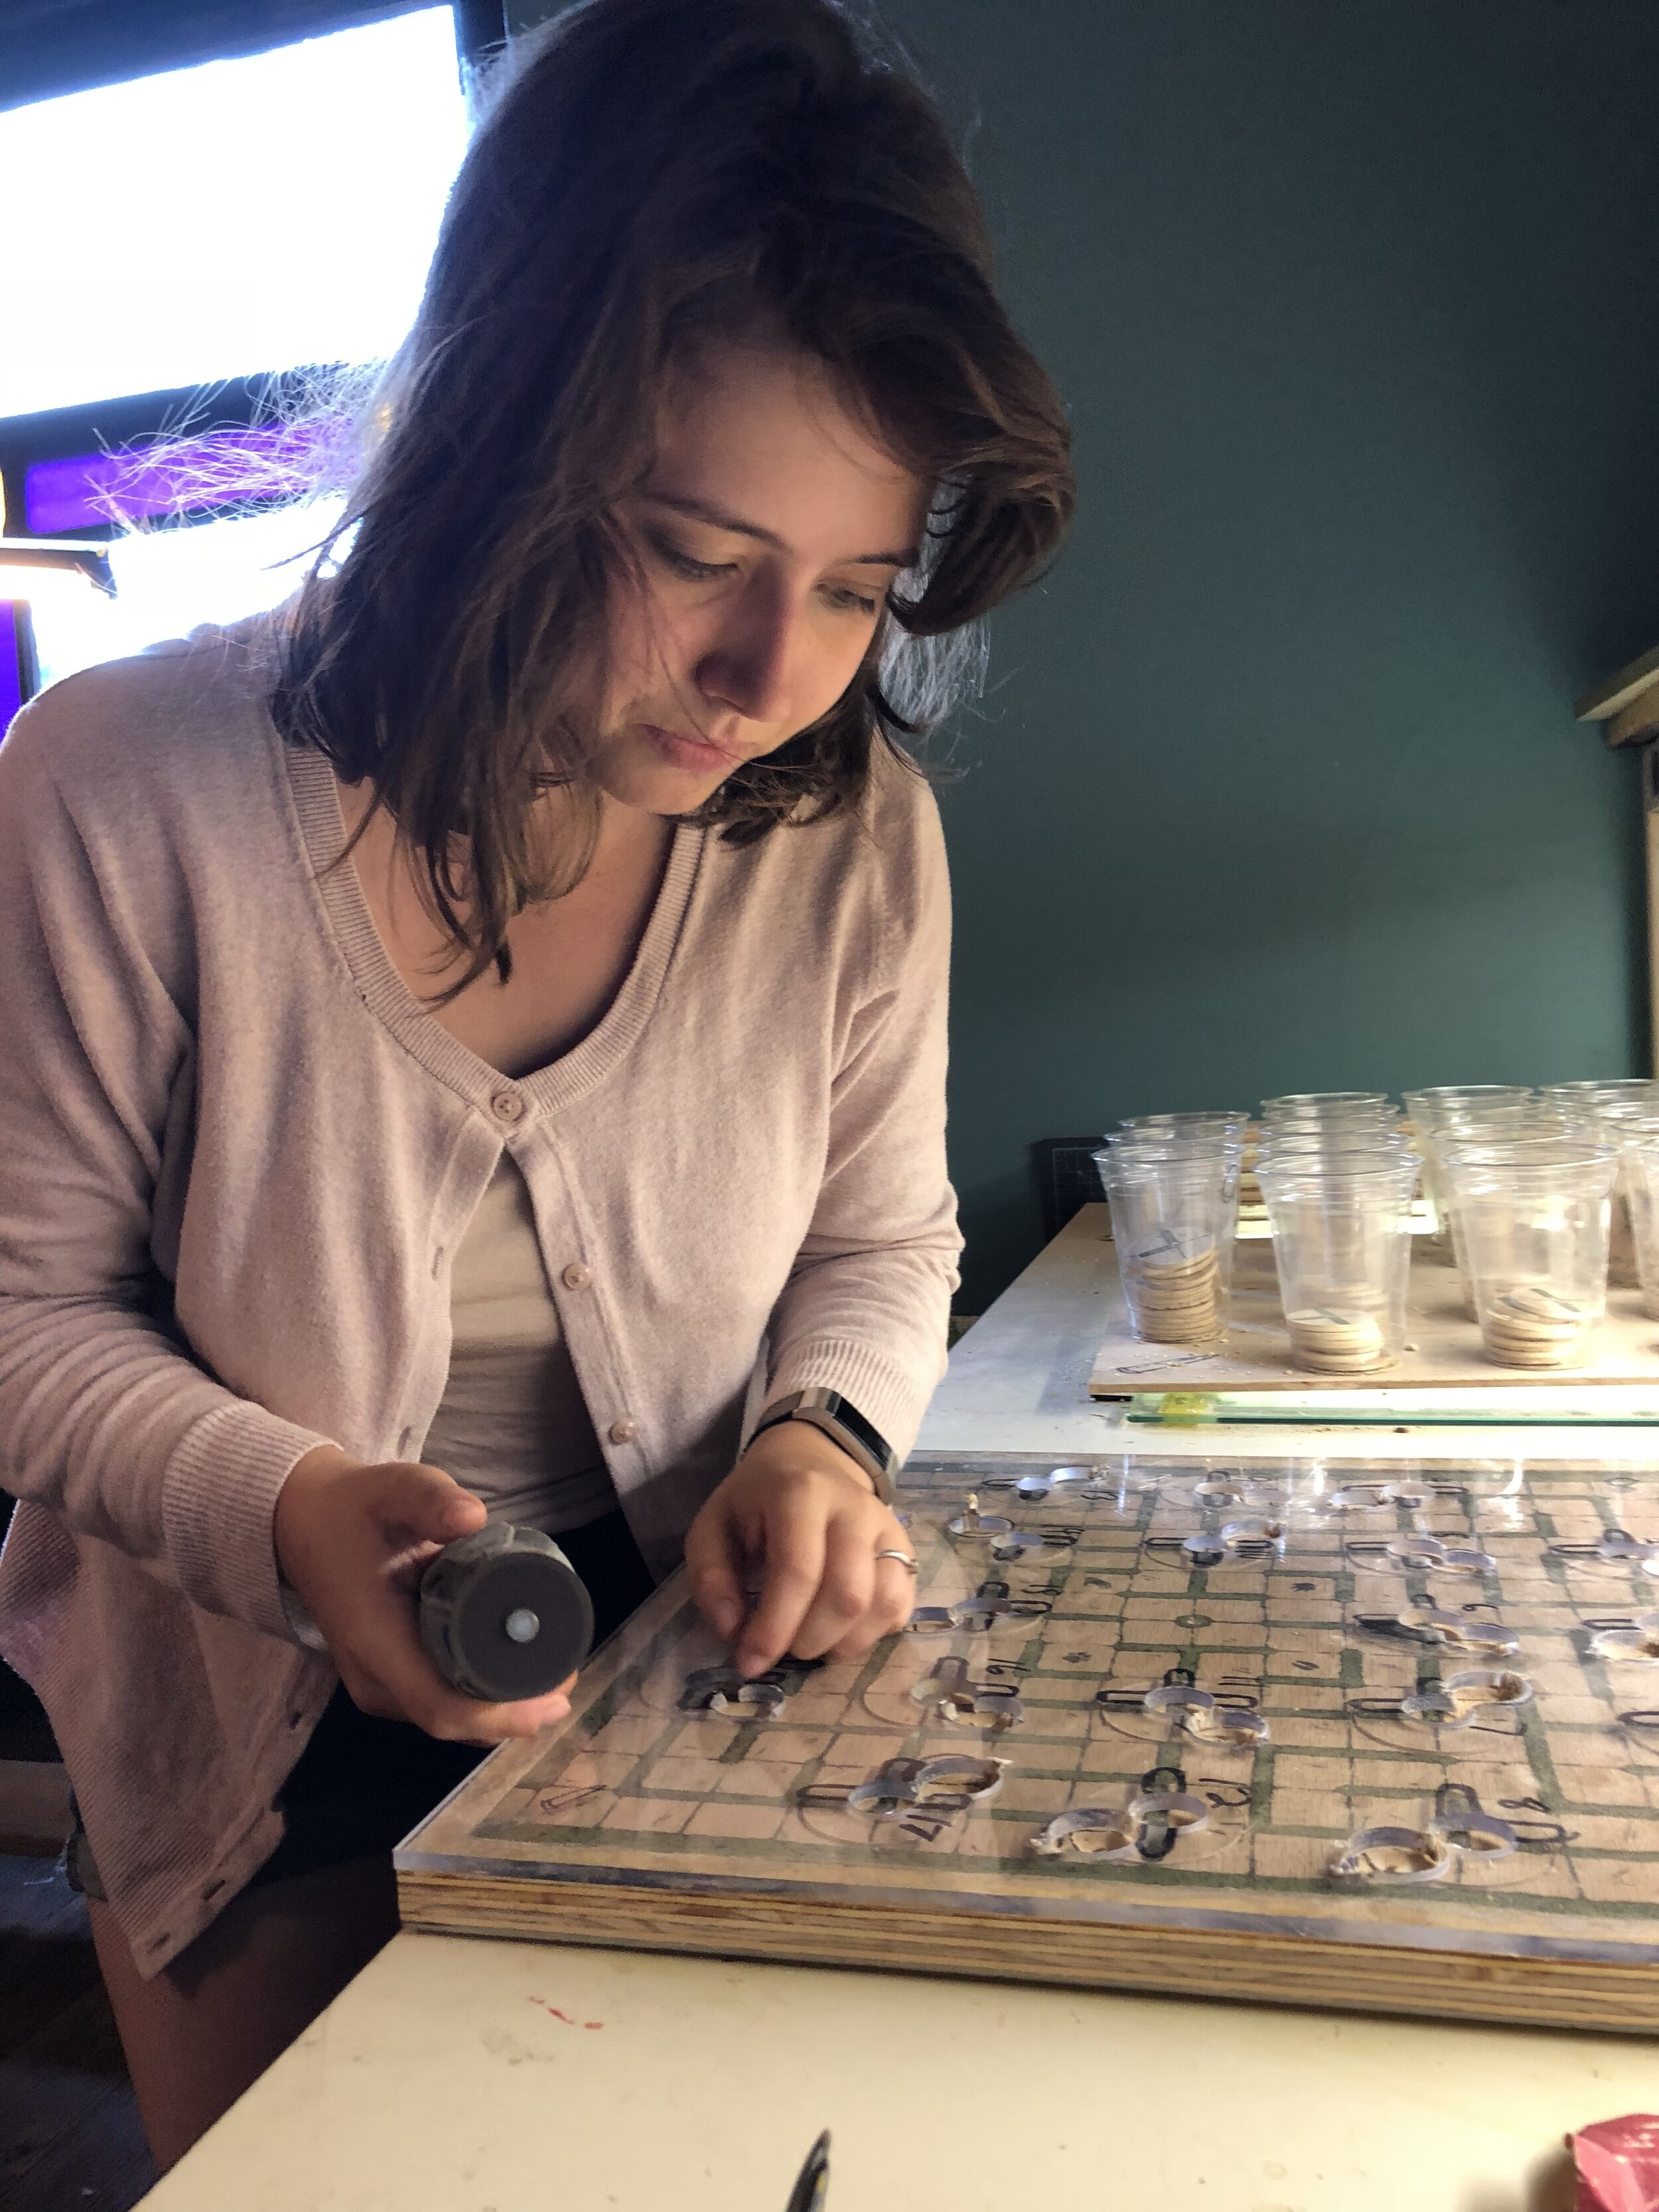 Molly carving knotches.jpg